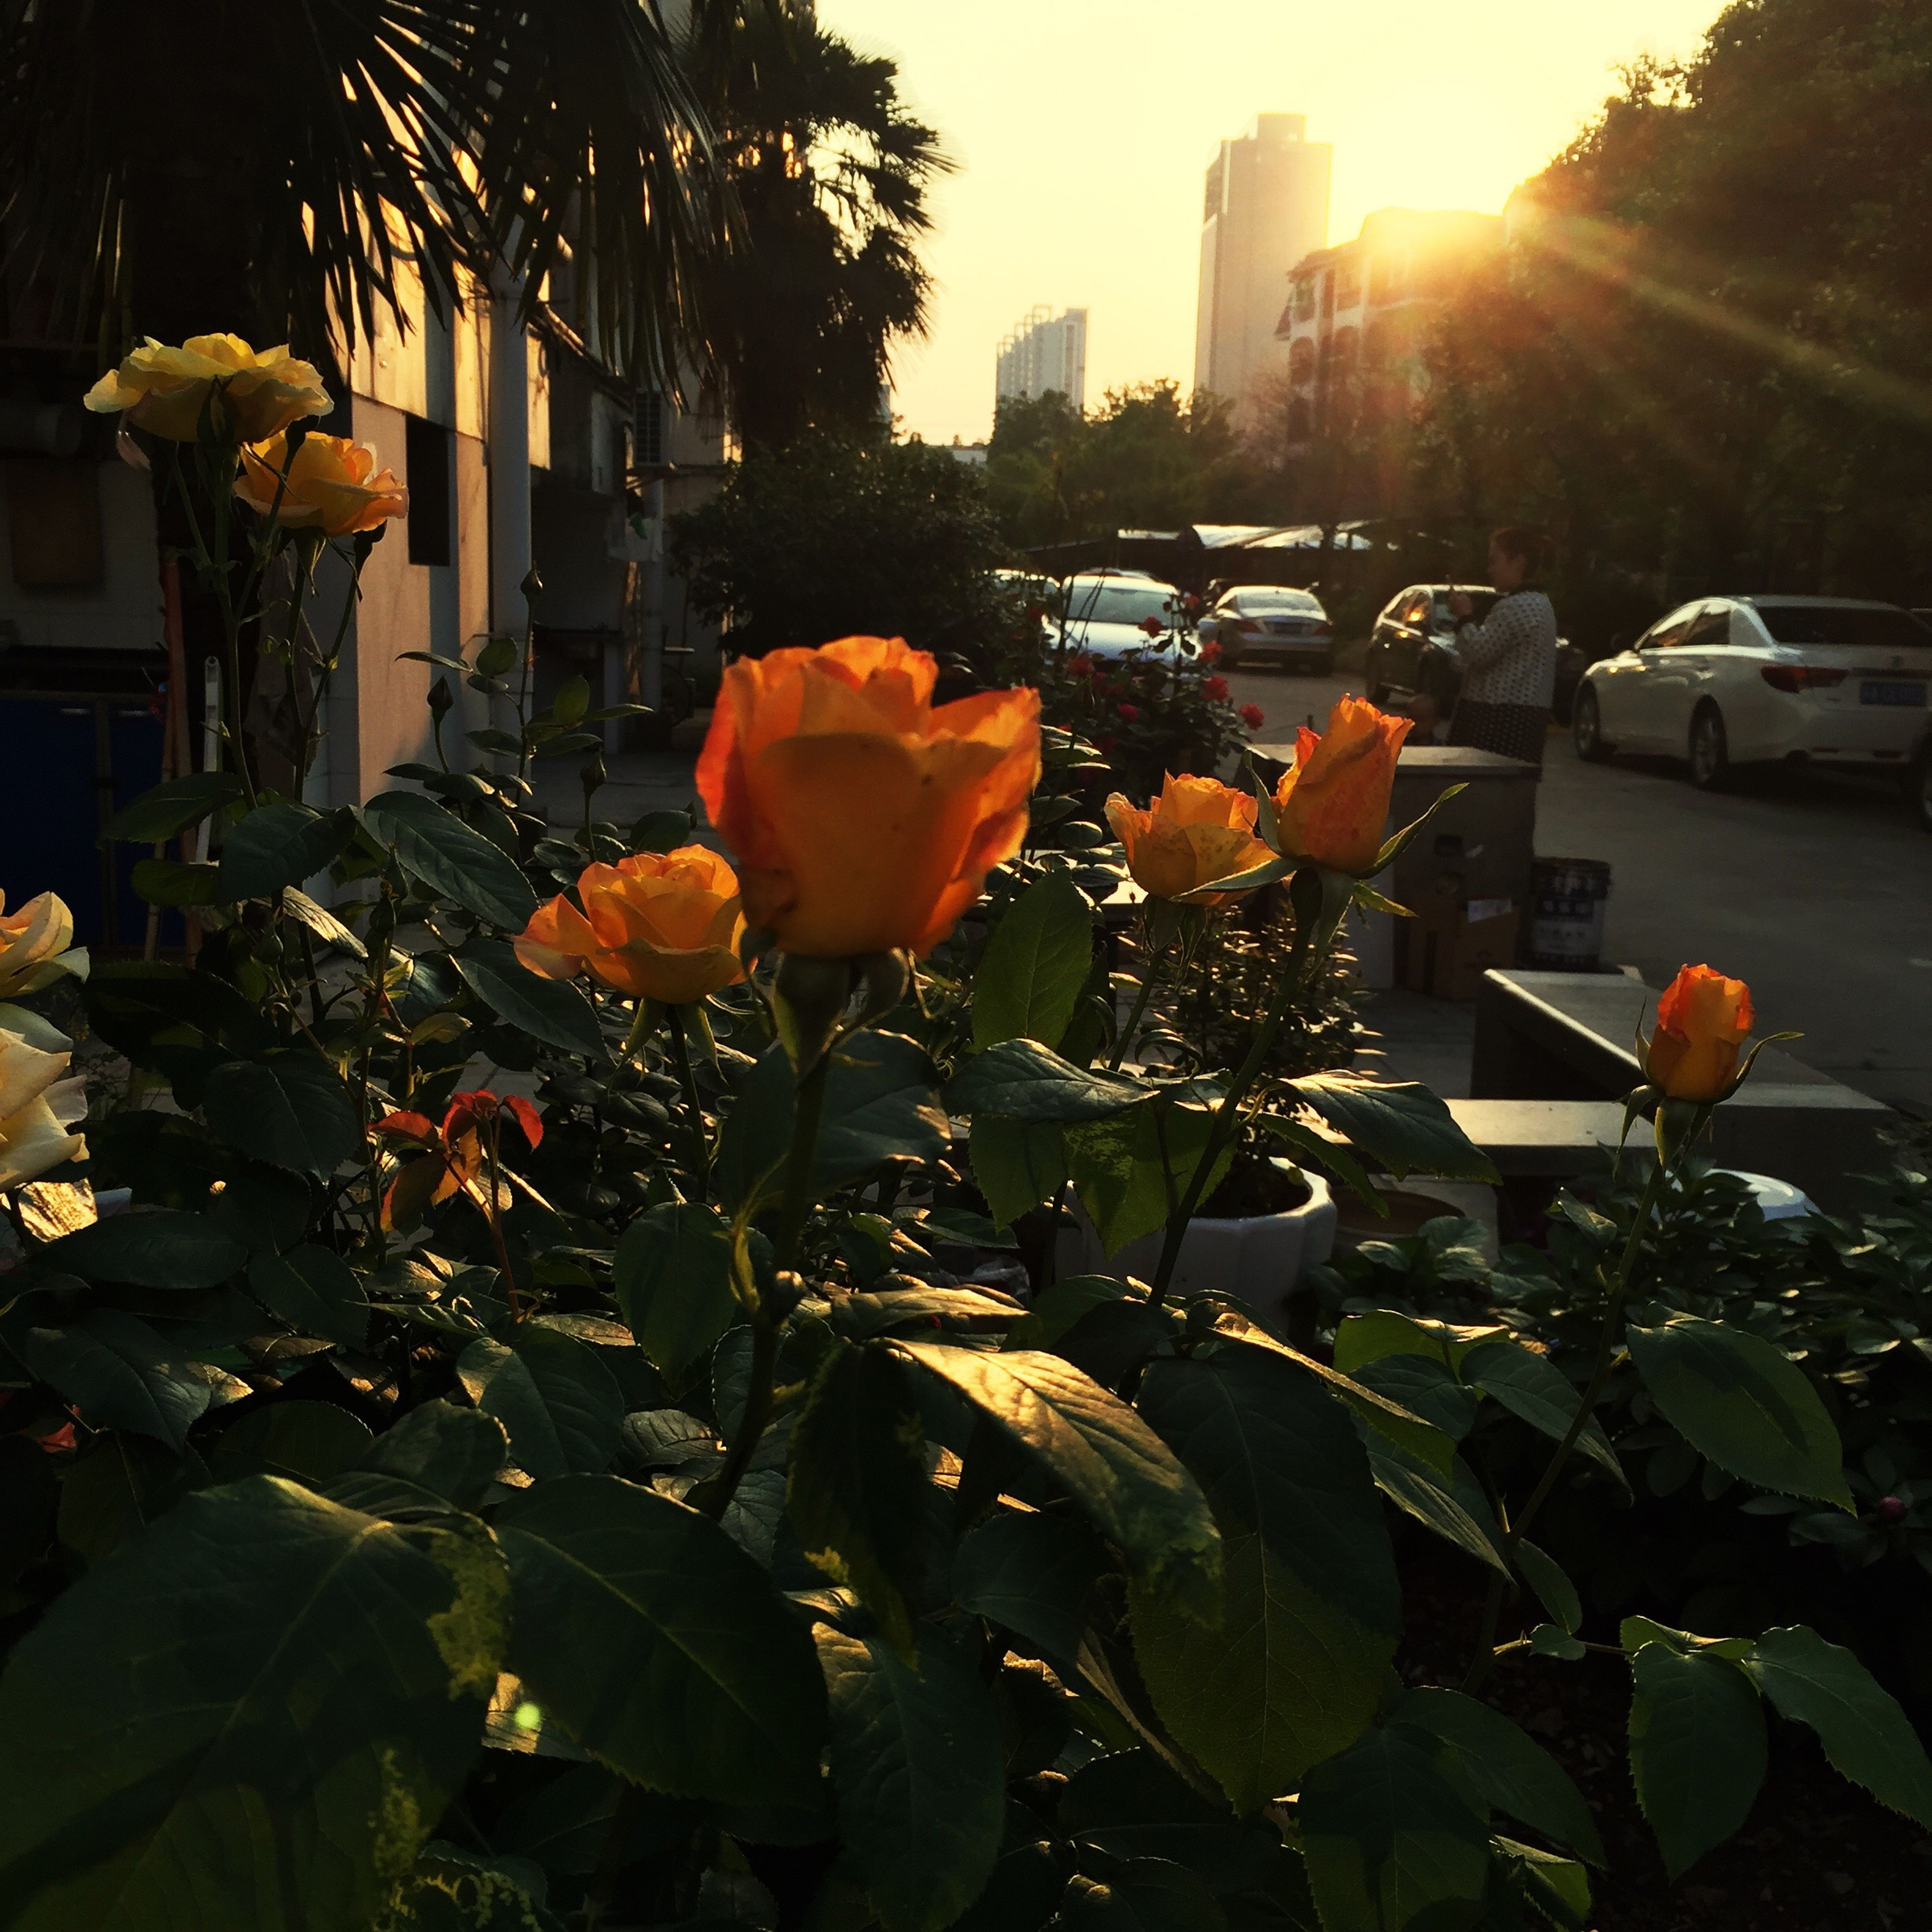 building exterior, architecture, sunlight, built structure, city, leaf, sunbeam, growth, flower, sun, car, plant, street, front or back yard, outdoors, transportation, lens flare, sunset, sunny, nature